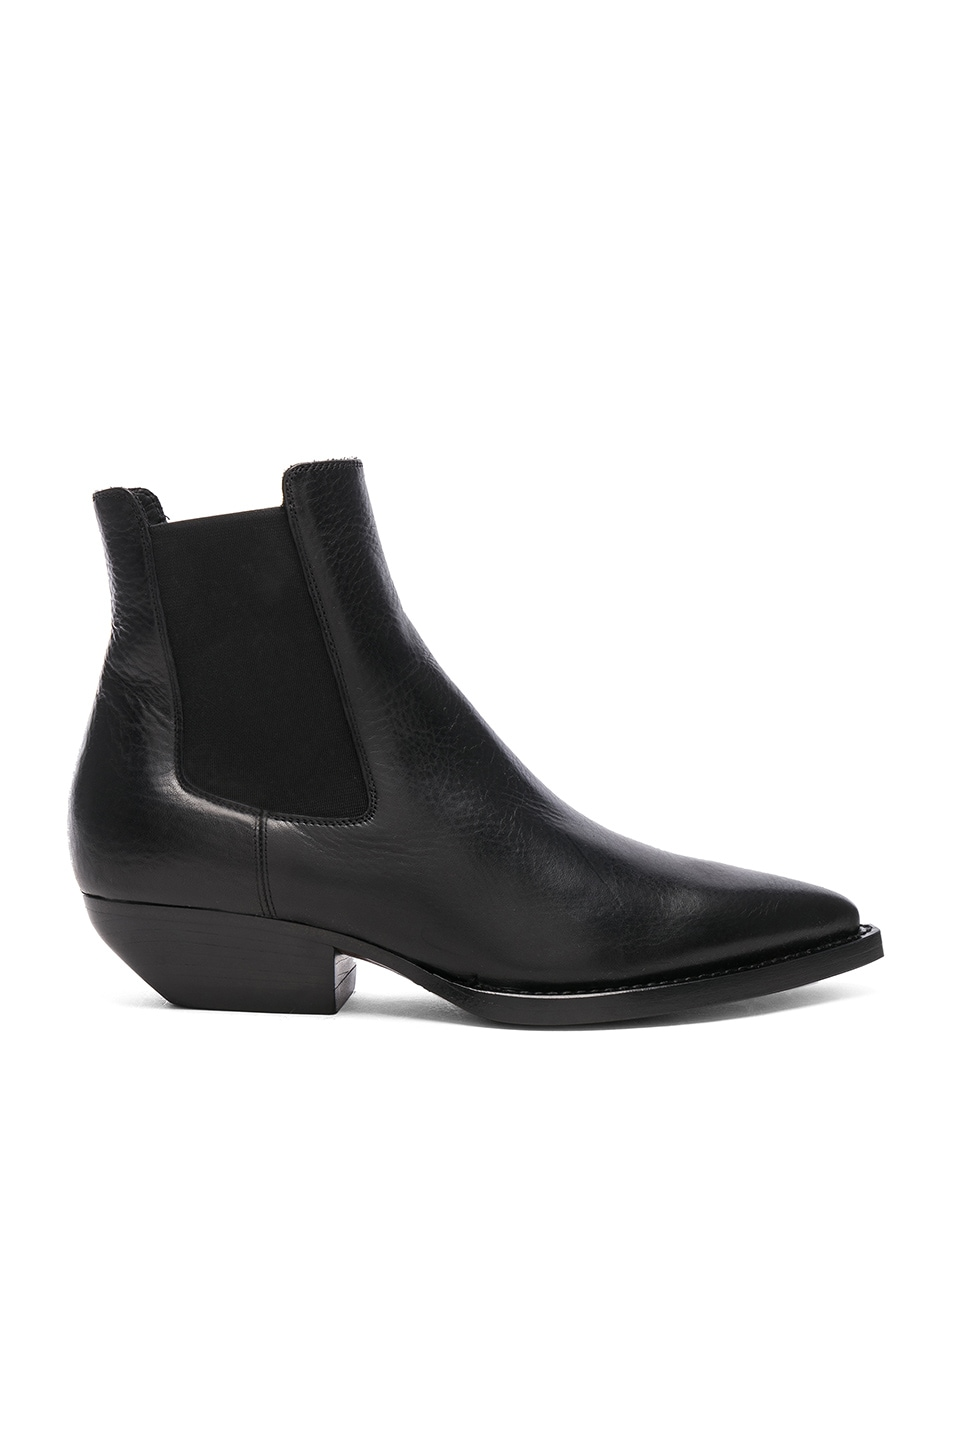 Image 1 of Saint Laurent Theo Leather Chelsea Boots in Black